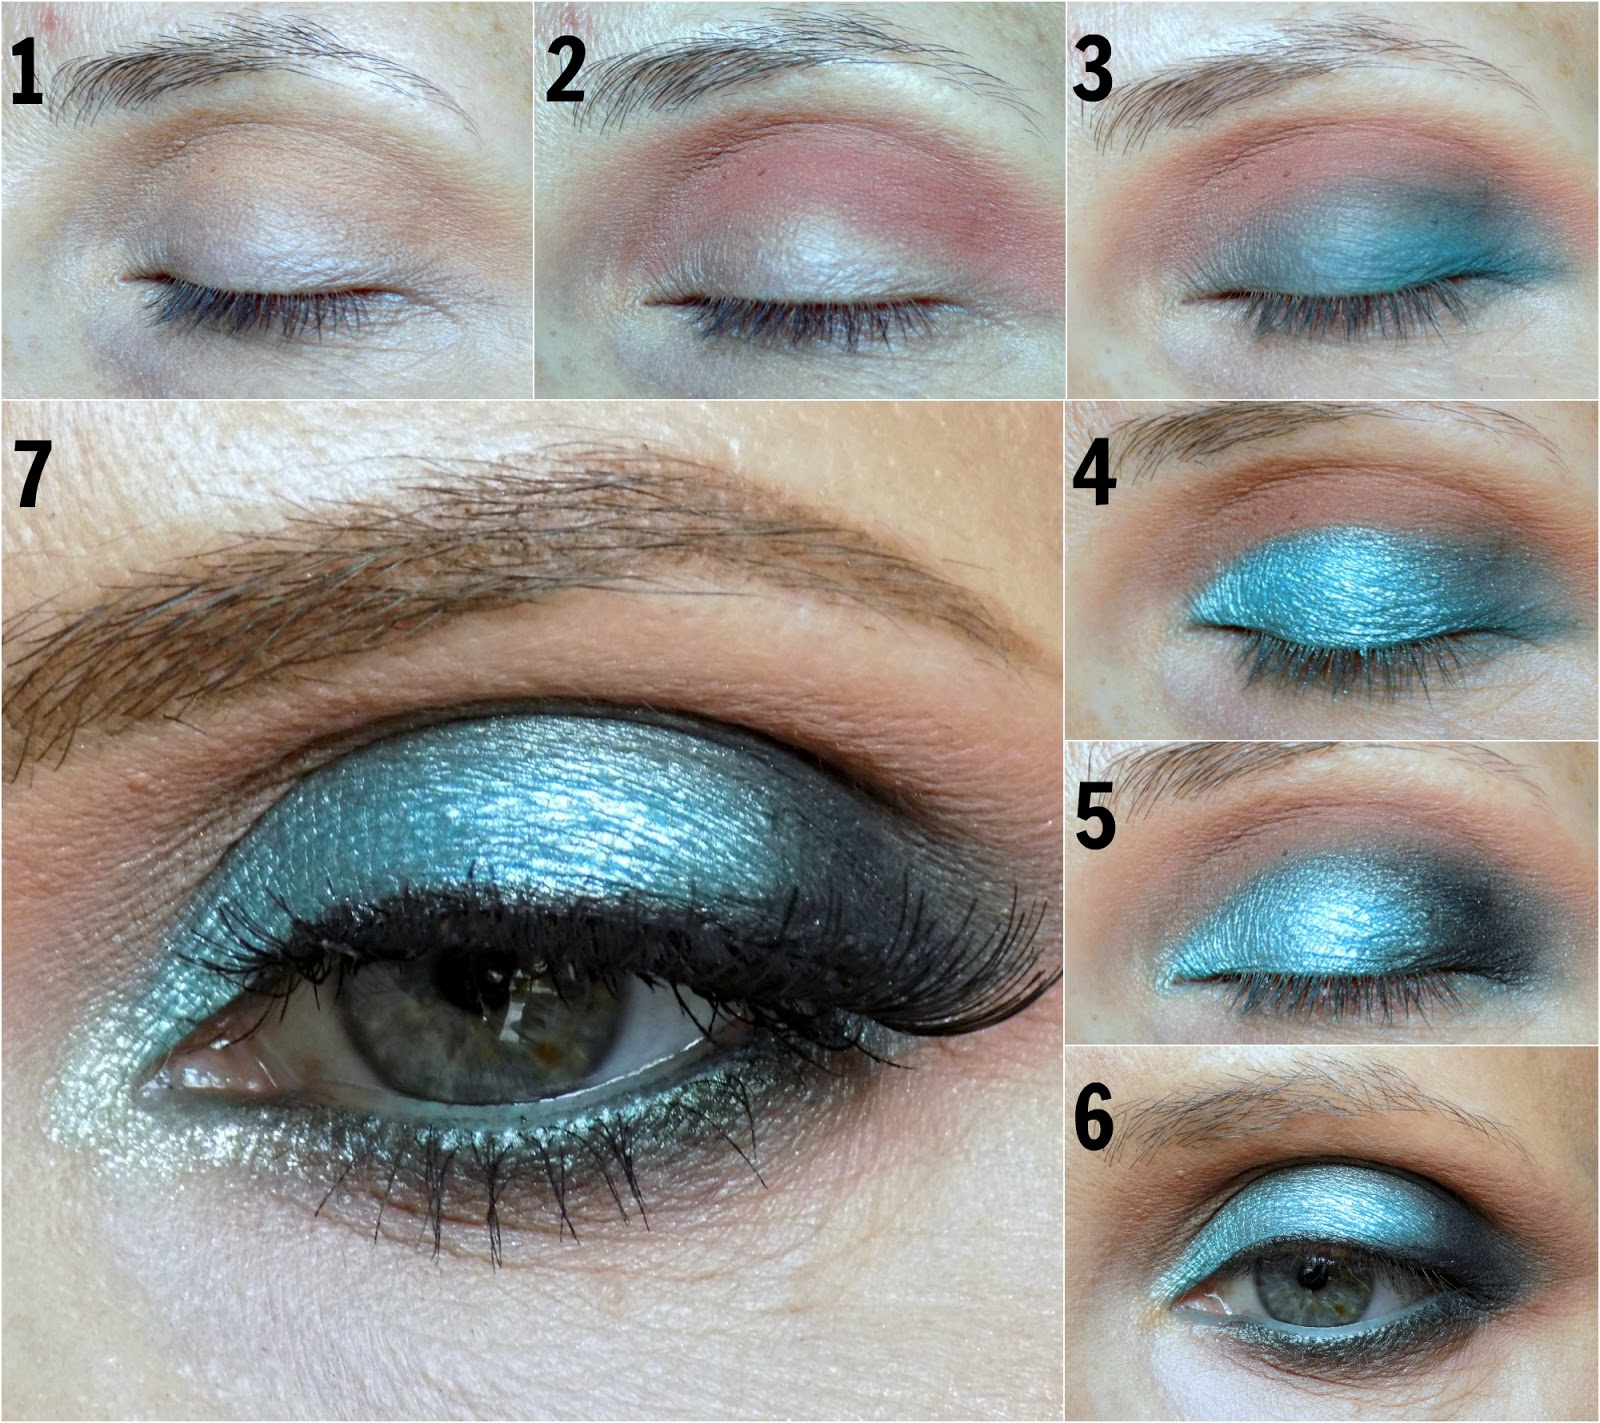 turquoise eye look tutorial using Makeup Geek eyeshadows